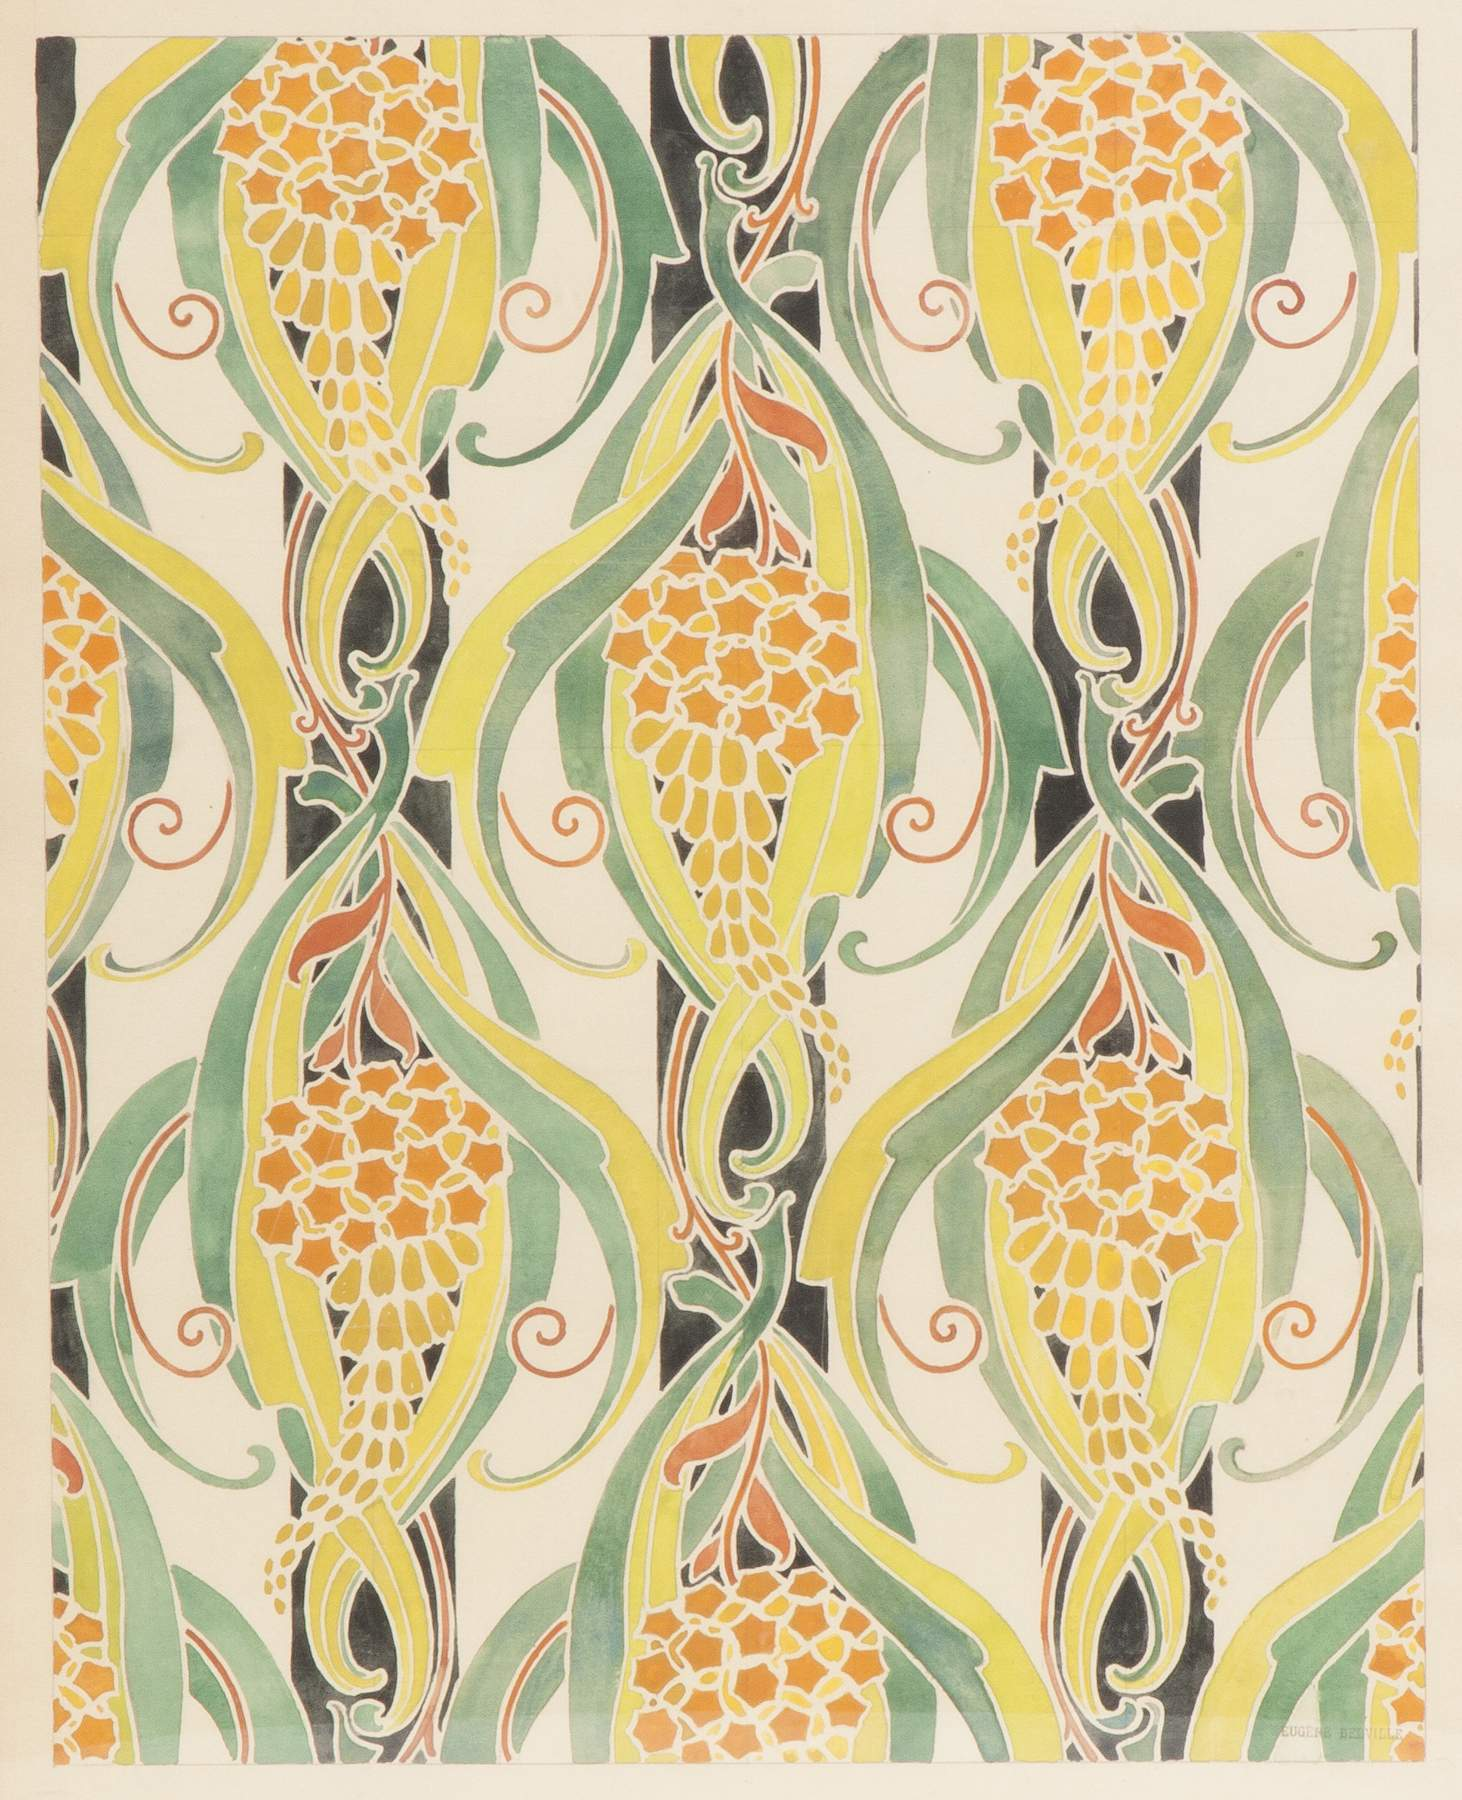 Four Art Nouveau Watercolor Wallpaper Designs by Eugene Belville ...